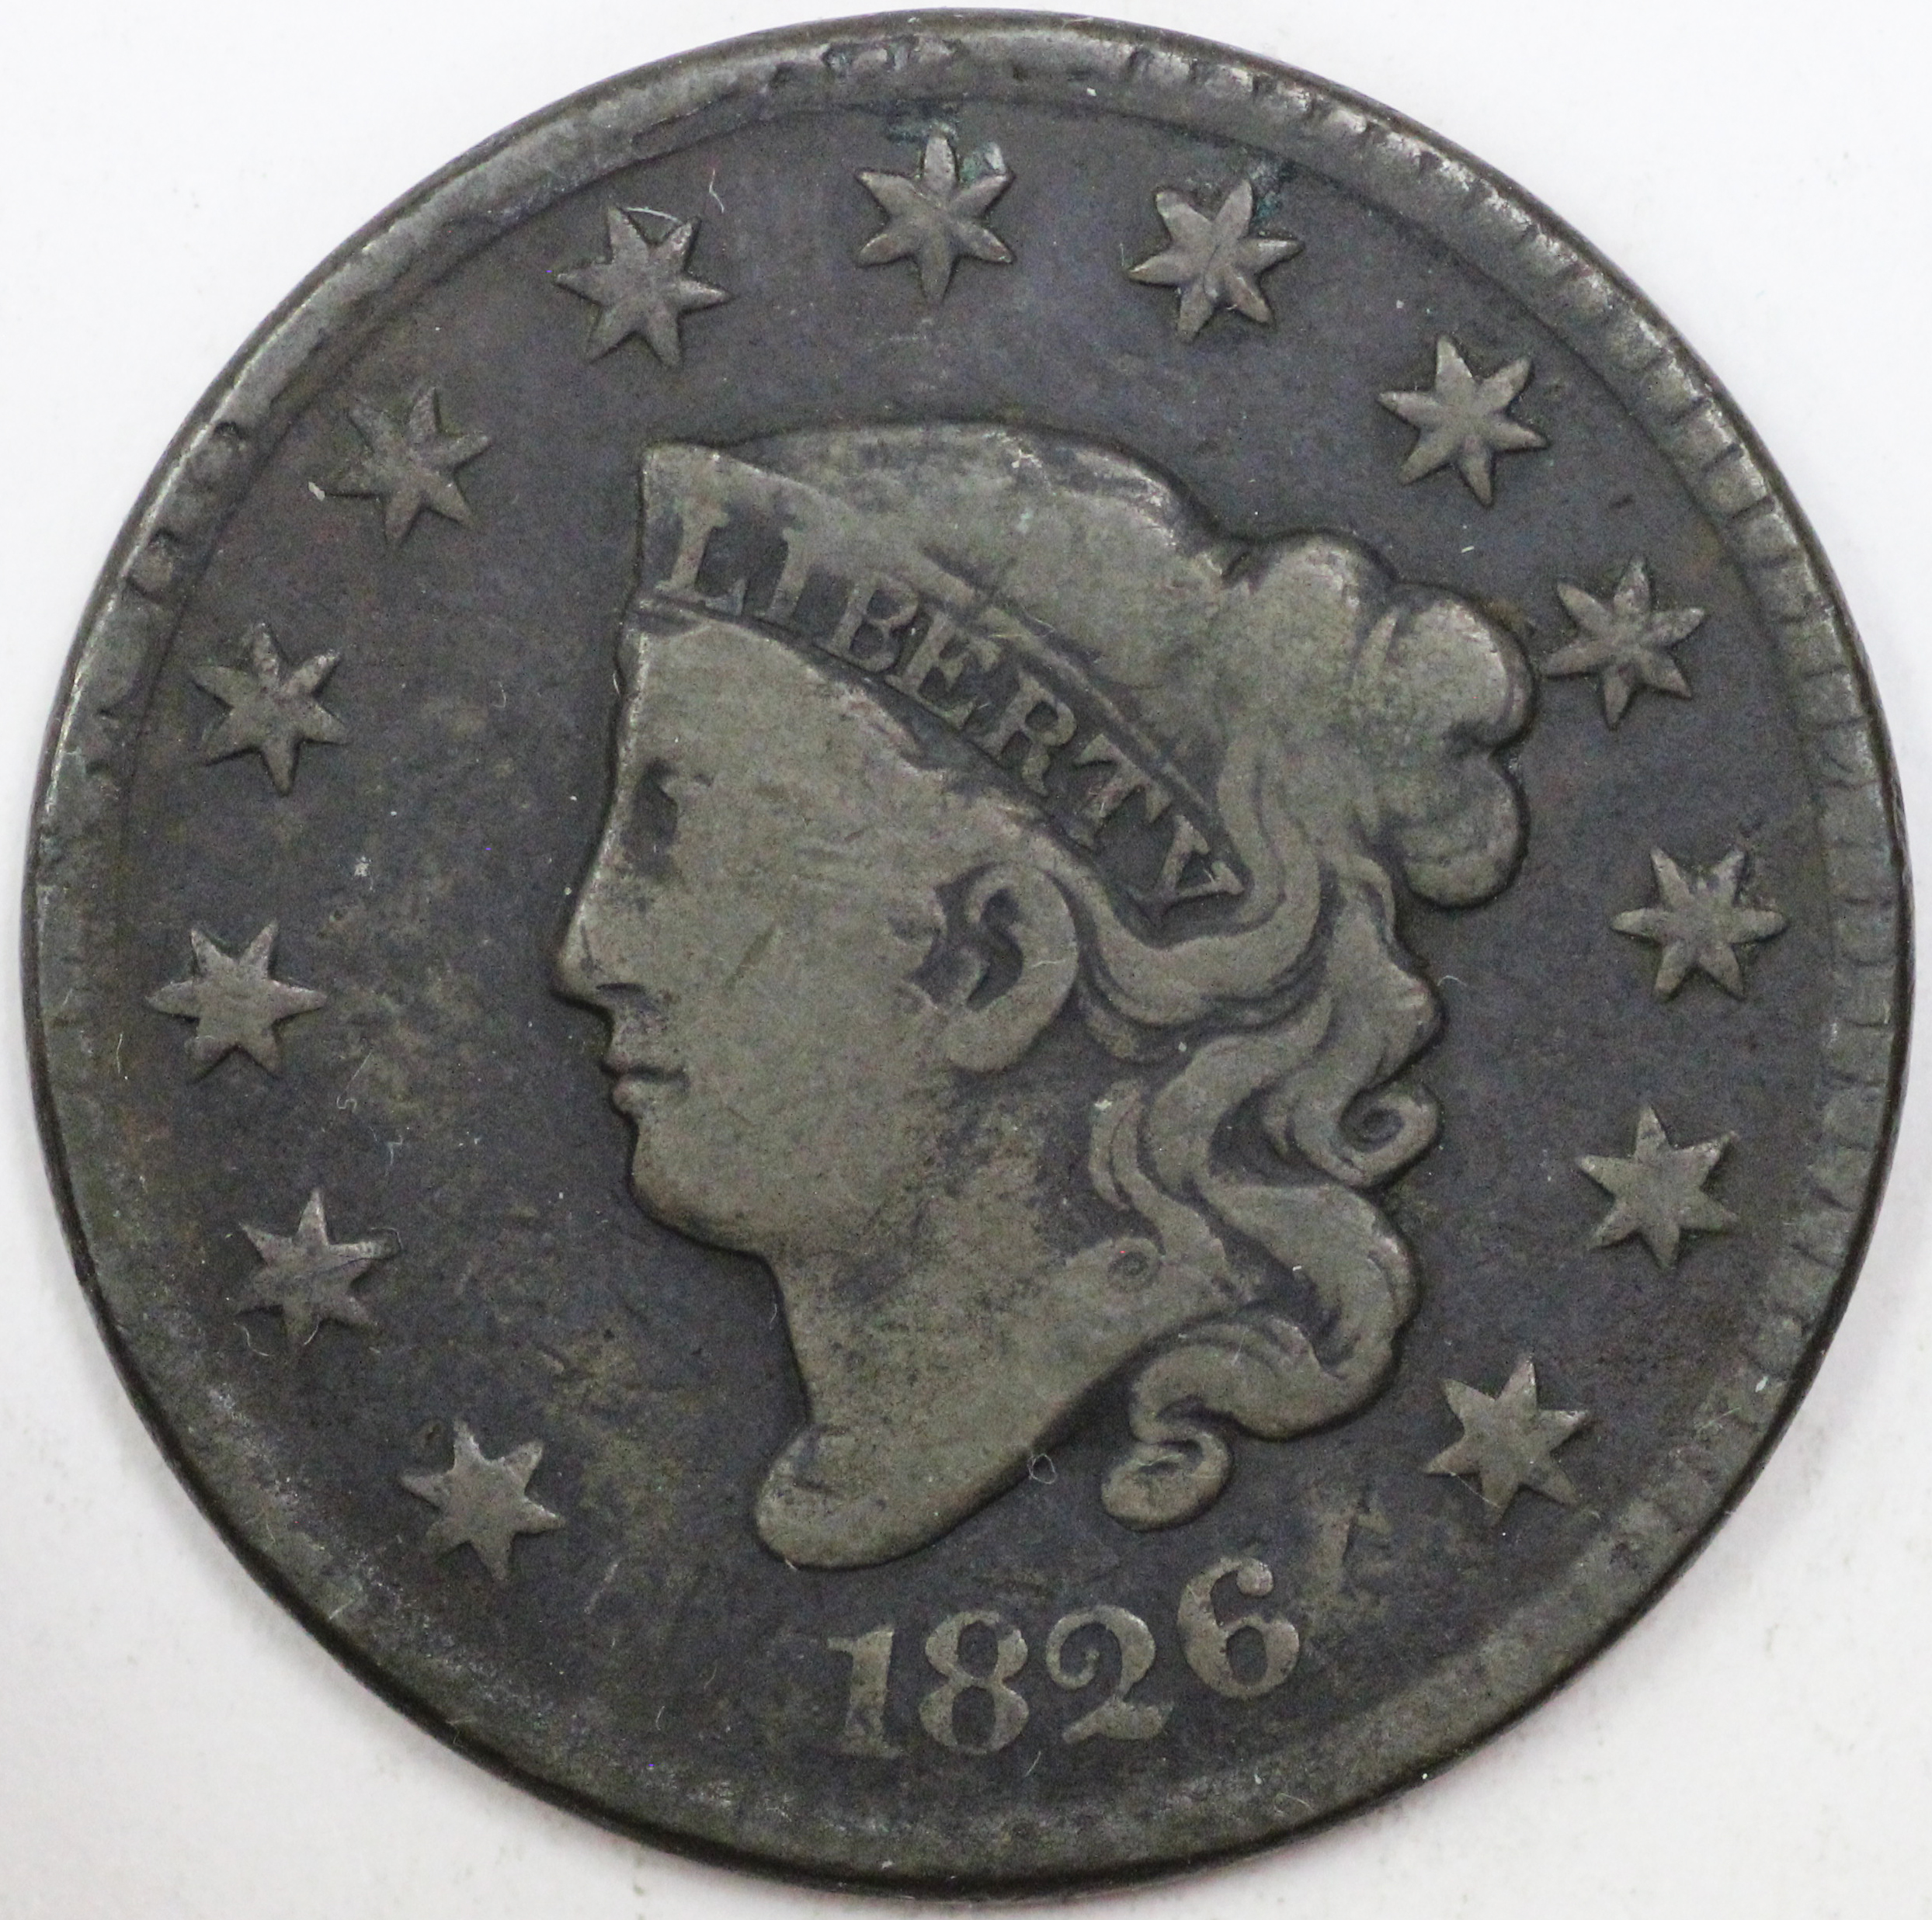 Shop For Coins Buying Selling And Appraising Coins